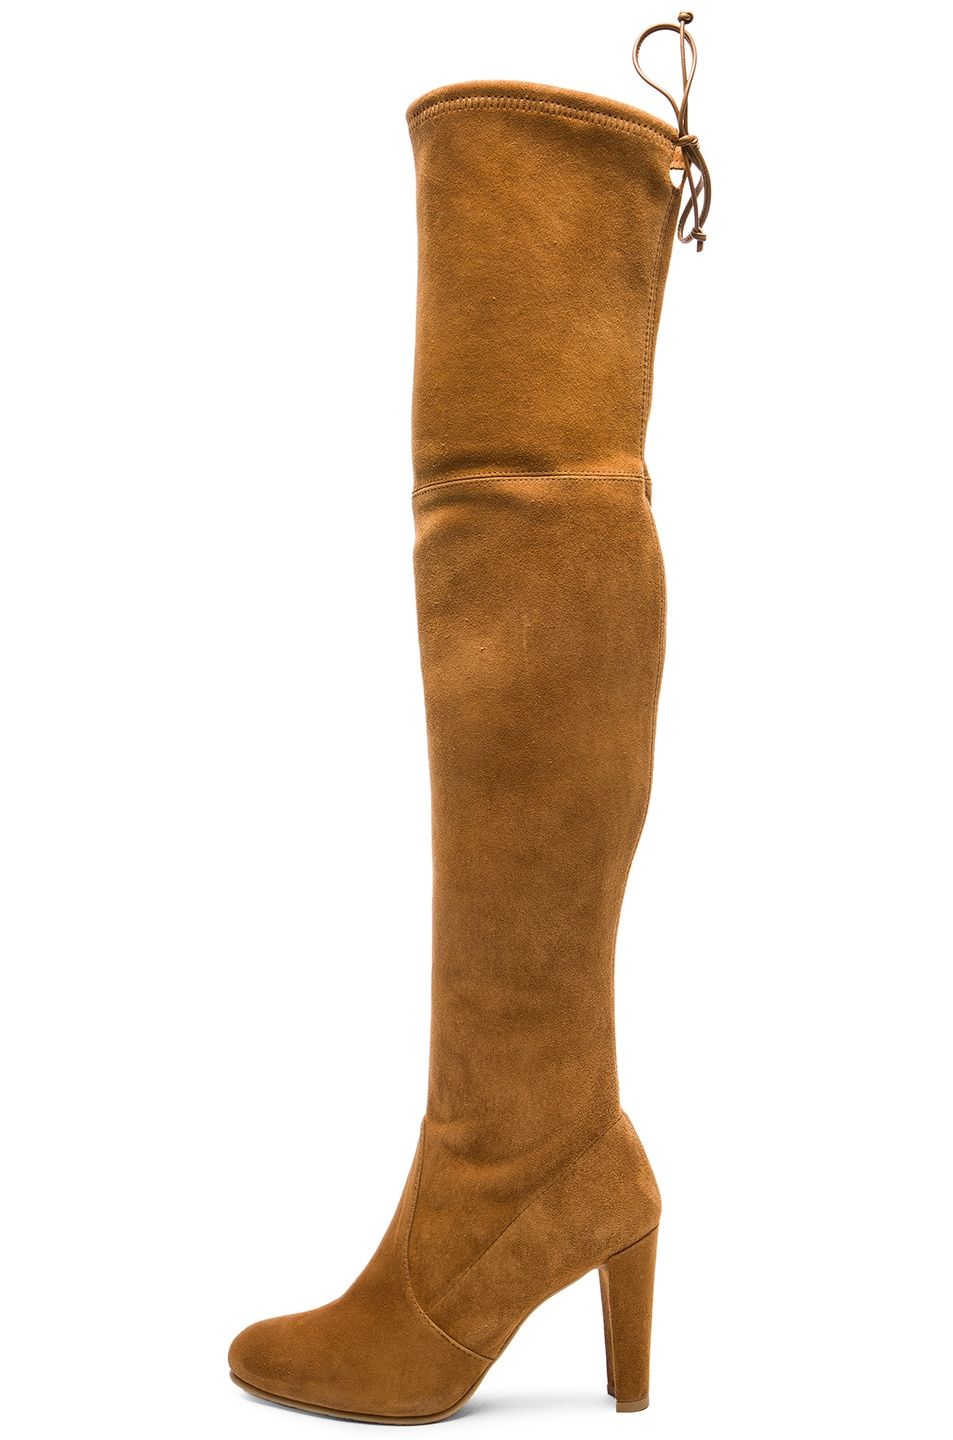 Image 5 of Stuart Weitzman Suede Highland Boots in Camel